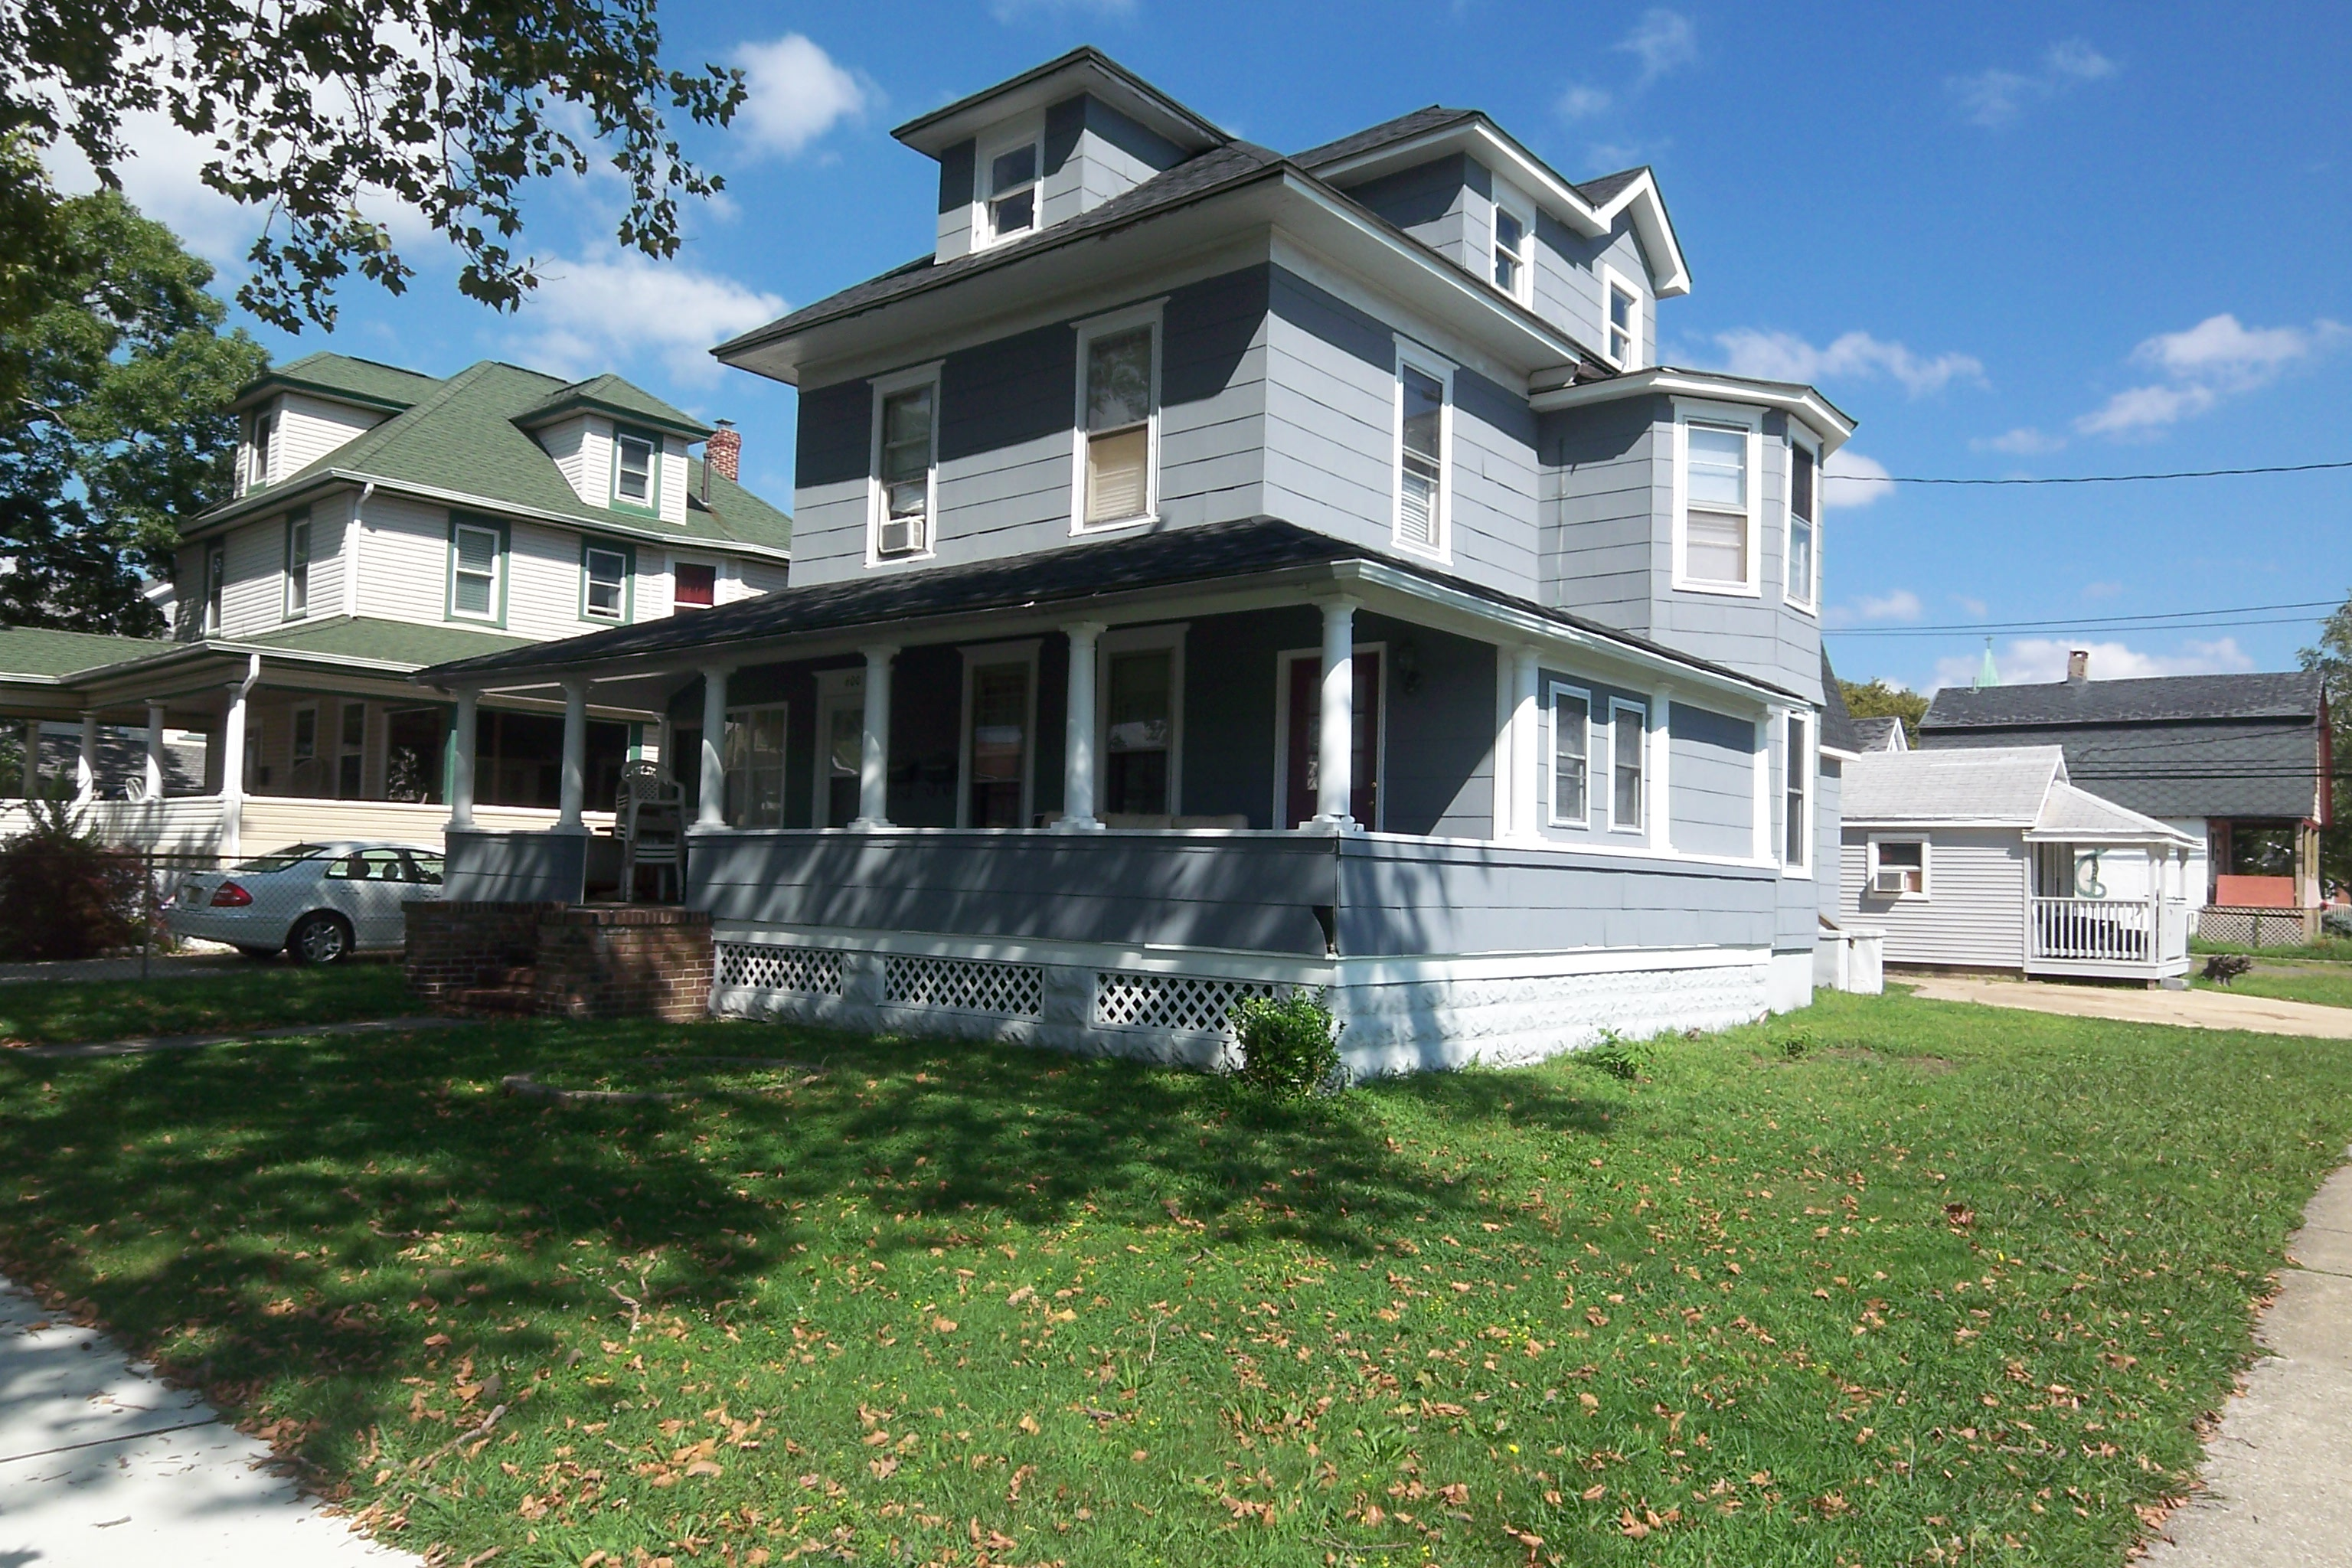 Multi-Family Home for Sale at Renovated Income Property 600 10th Ave Belmar, New Jersey 07719 United States